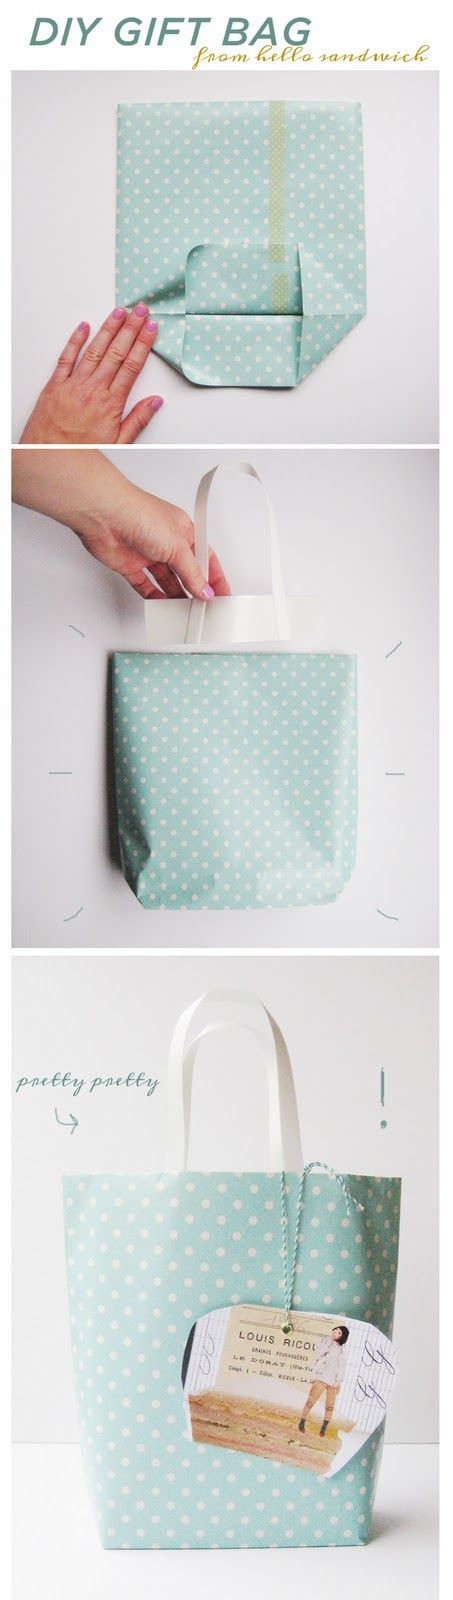 gift bags from wrapping paper - can make whatever size you need! I think I might make a bunch at once to have on hand...